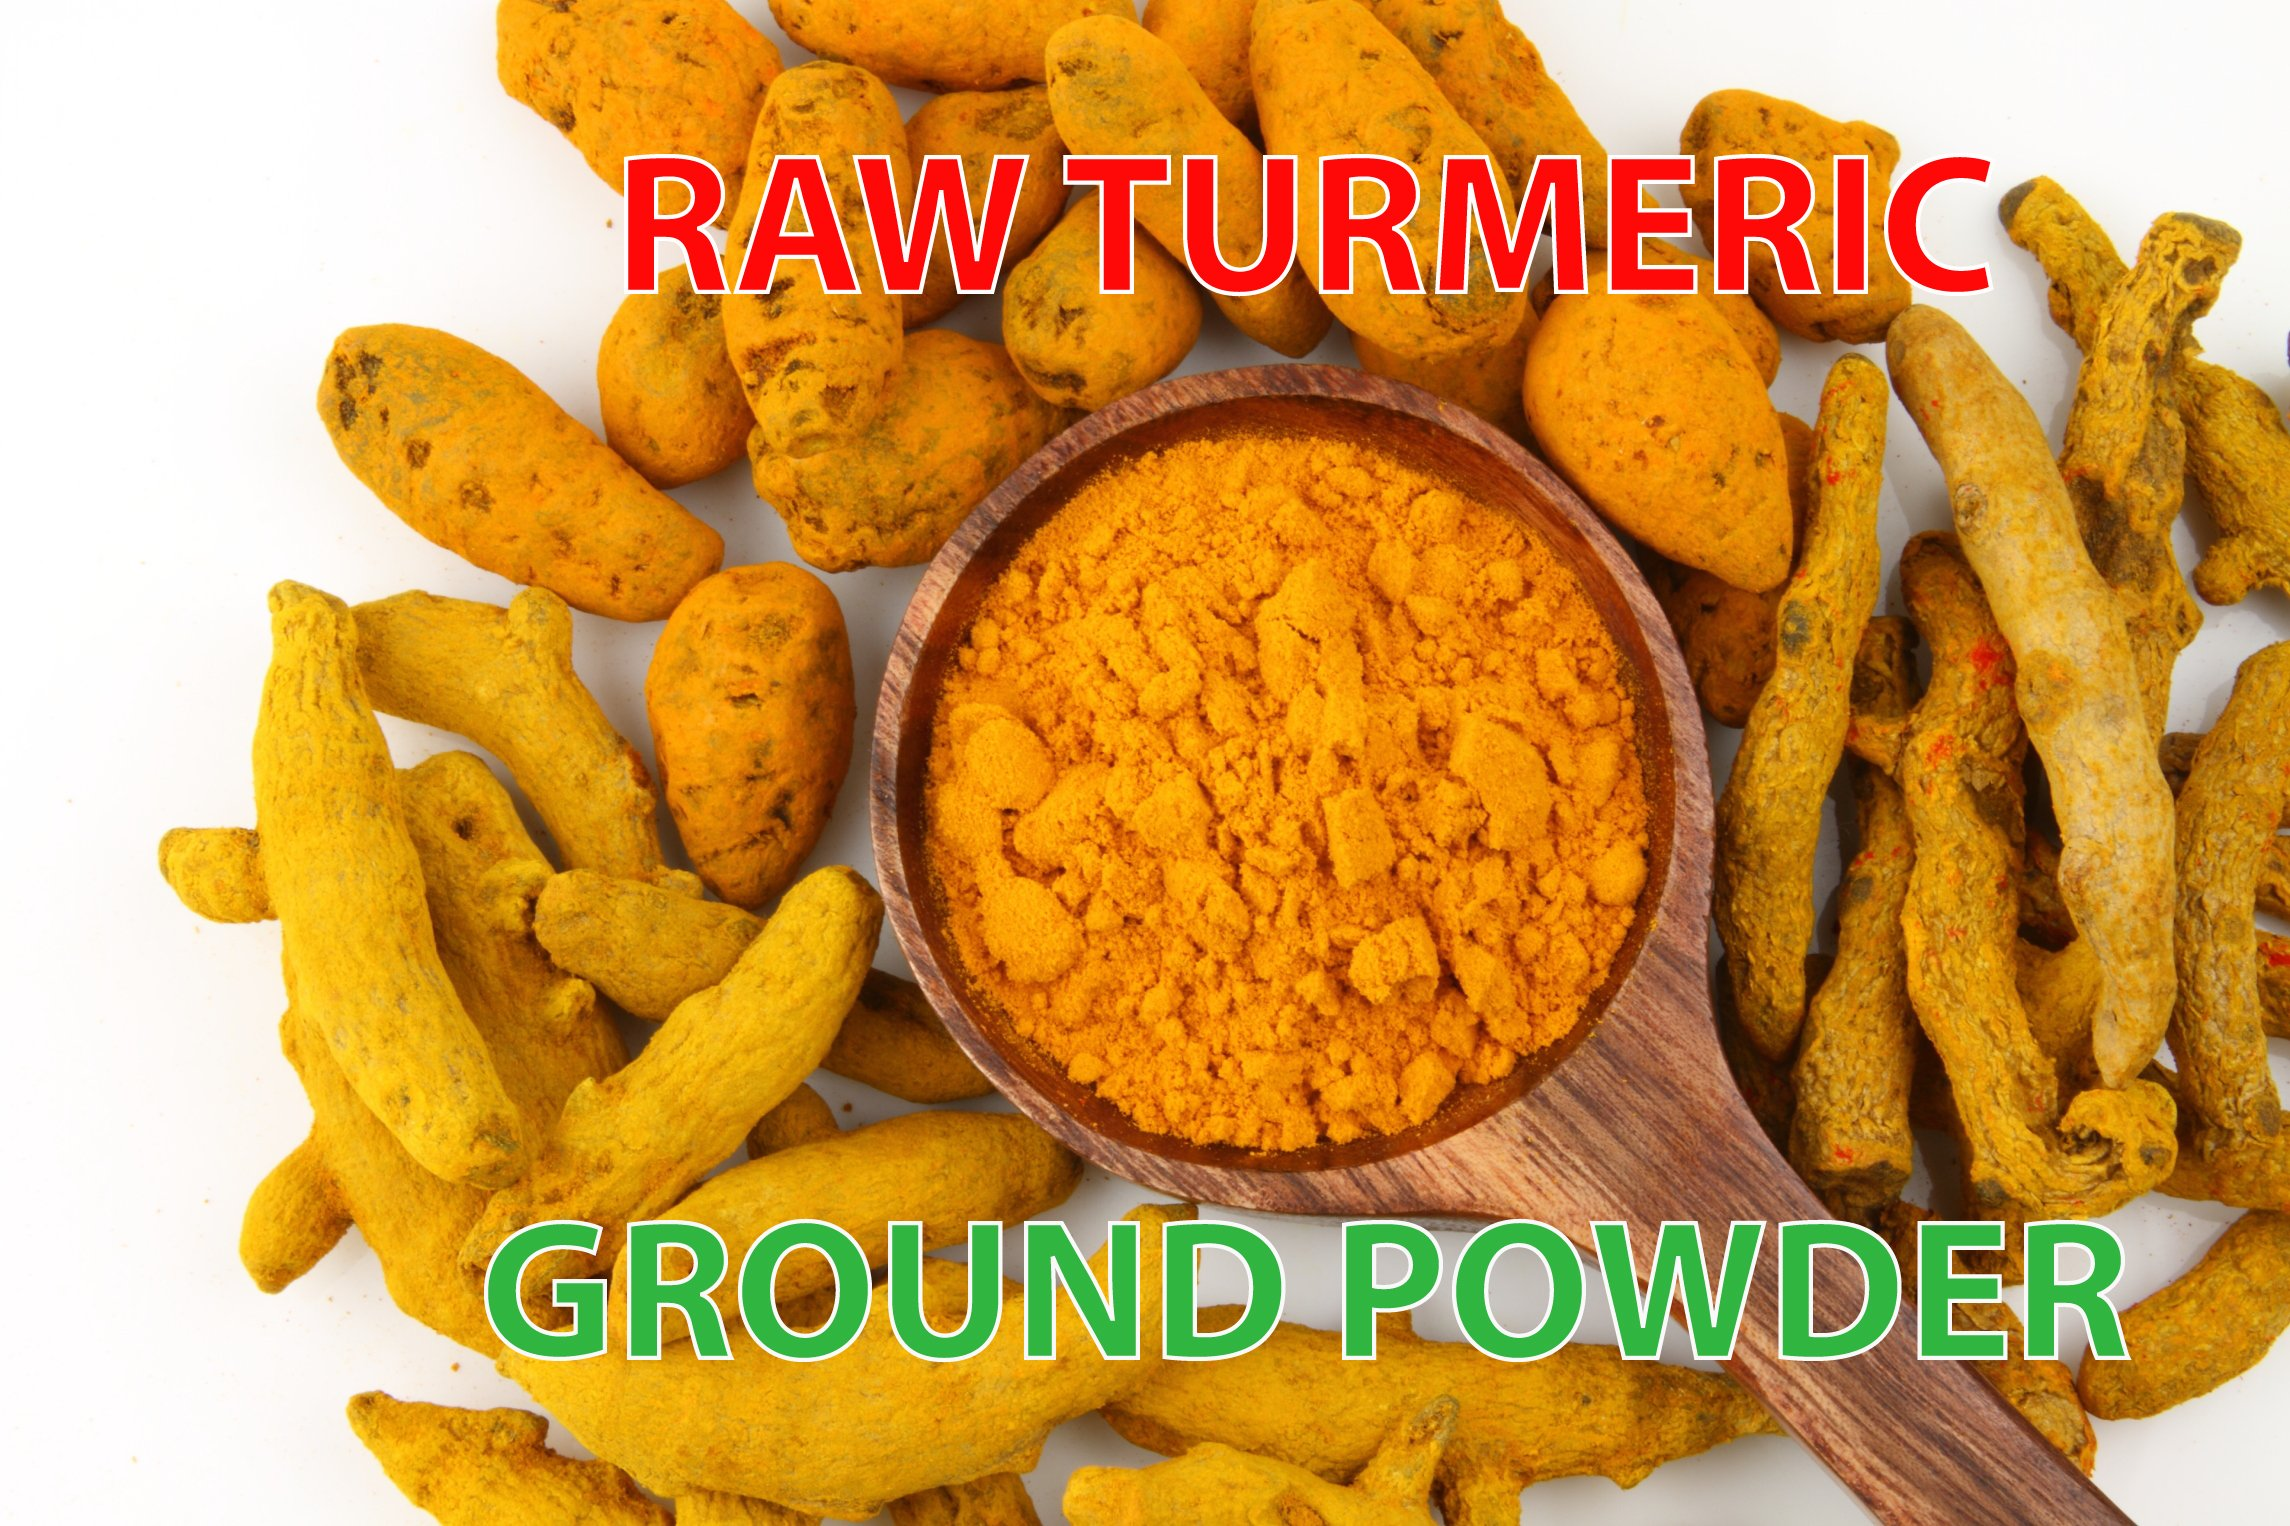 Sweet Sunnah Turmeric Root Ground (Alleppey, 5% Curcumin), Turmeric Powder - Curcumin Powder - Pesticides Free - Gluten-Free & Non-GMO 1 Pound